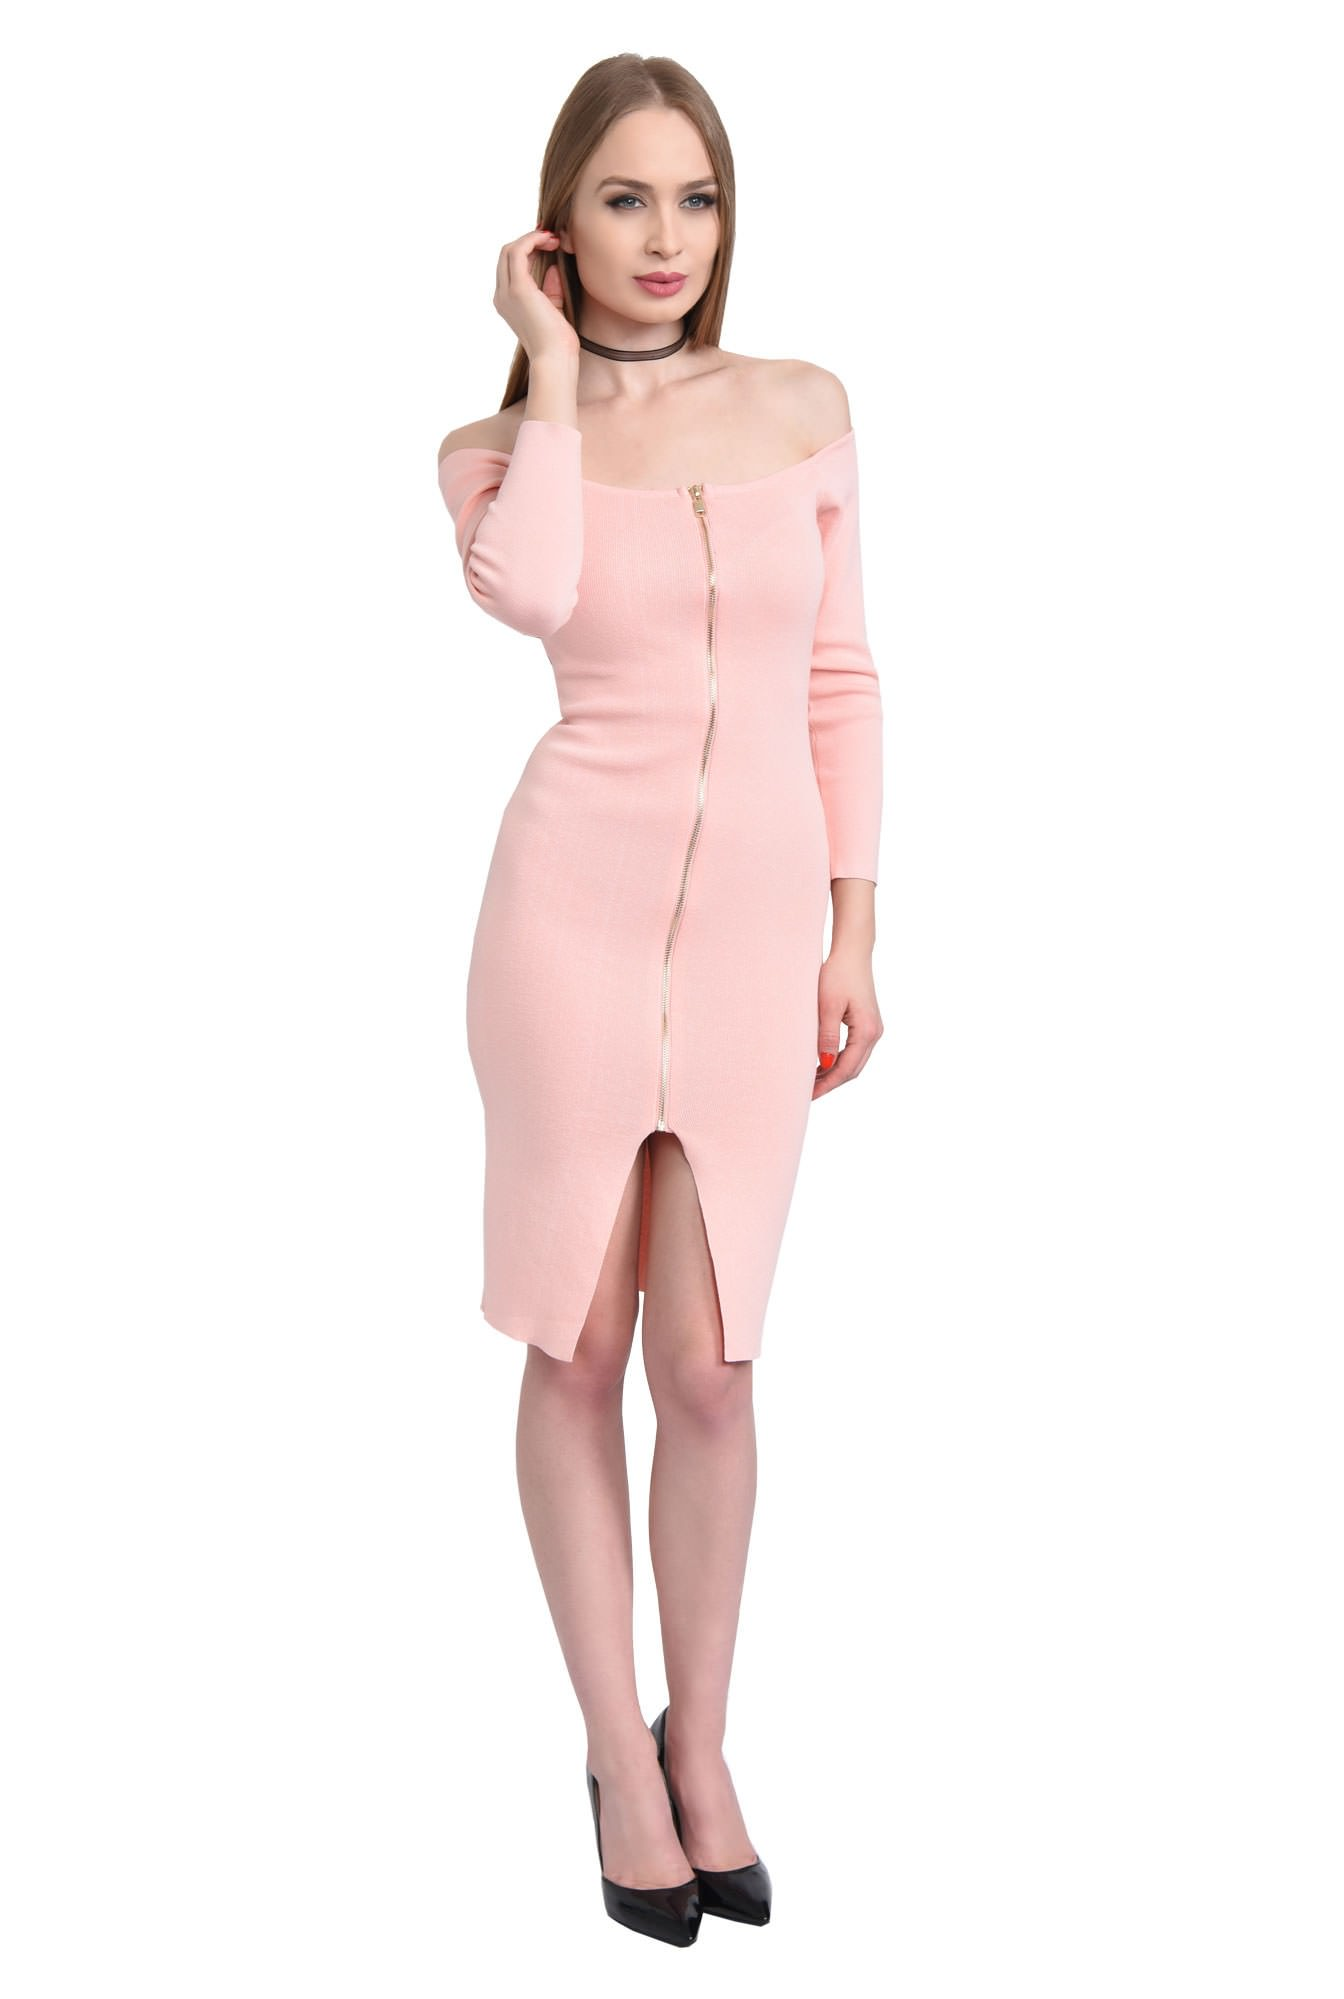 0 - ROCHIE CASUAL R15021704-ROZ